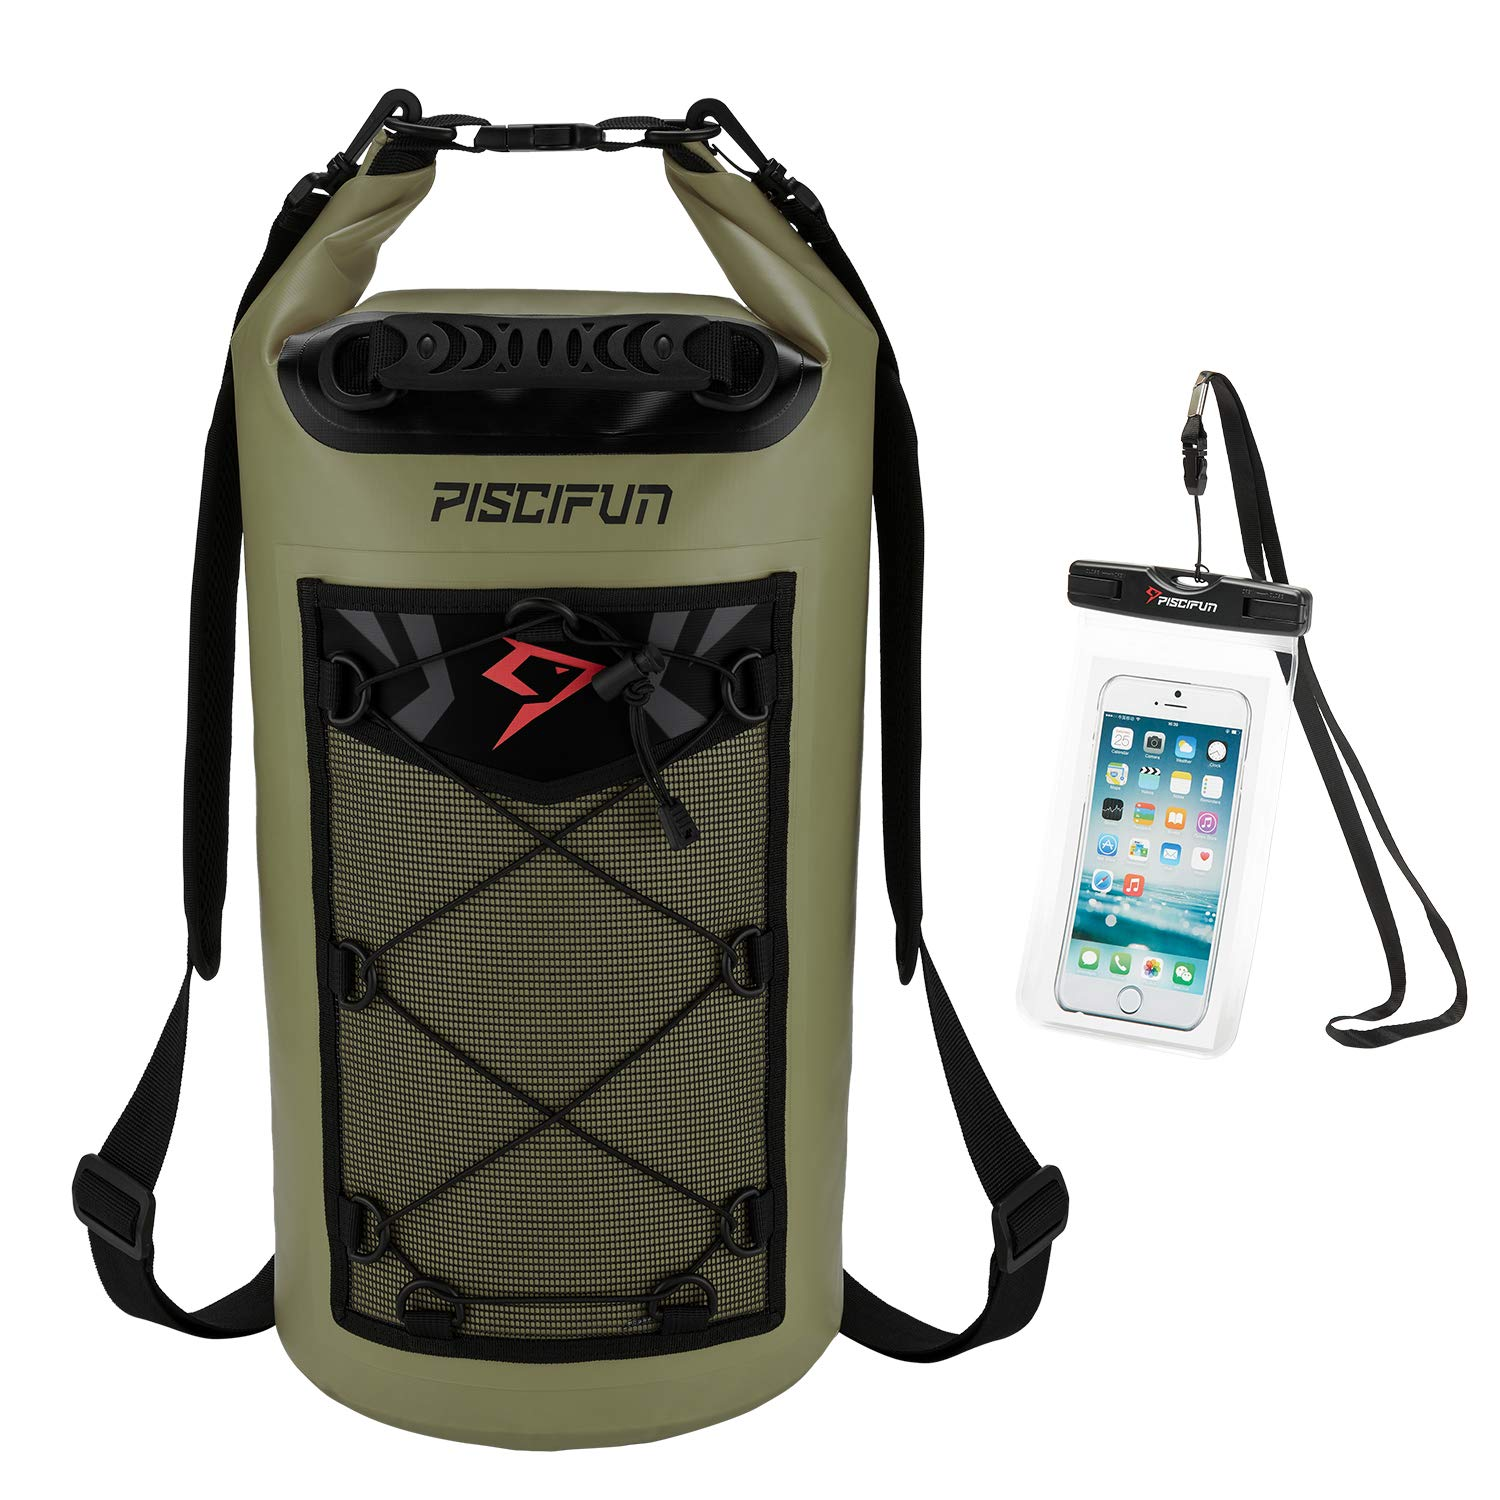 Piscifun Waterproof Dry Bag Backpack Floating Dry Backpack for Water Sports - Fishing Boating Kayaking Surfing Rafting Camping Gifts for Men and Women Free Waterproof Phone Case Army Green 10L by Piscifun